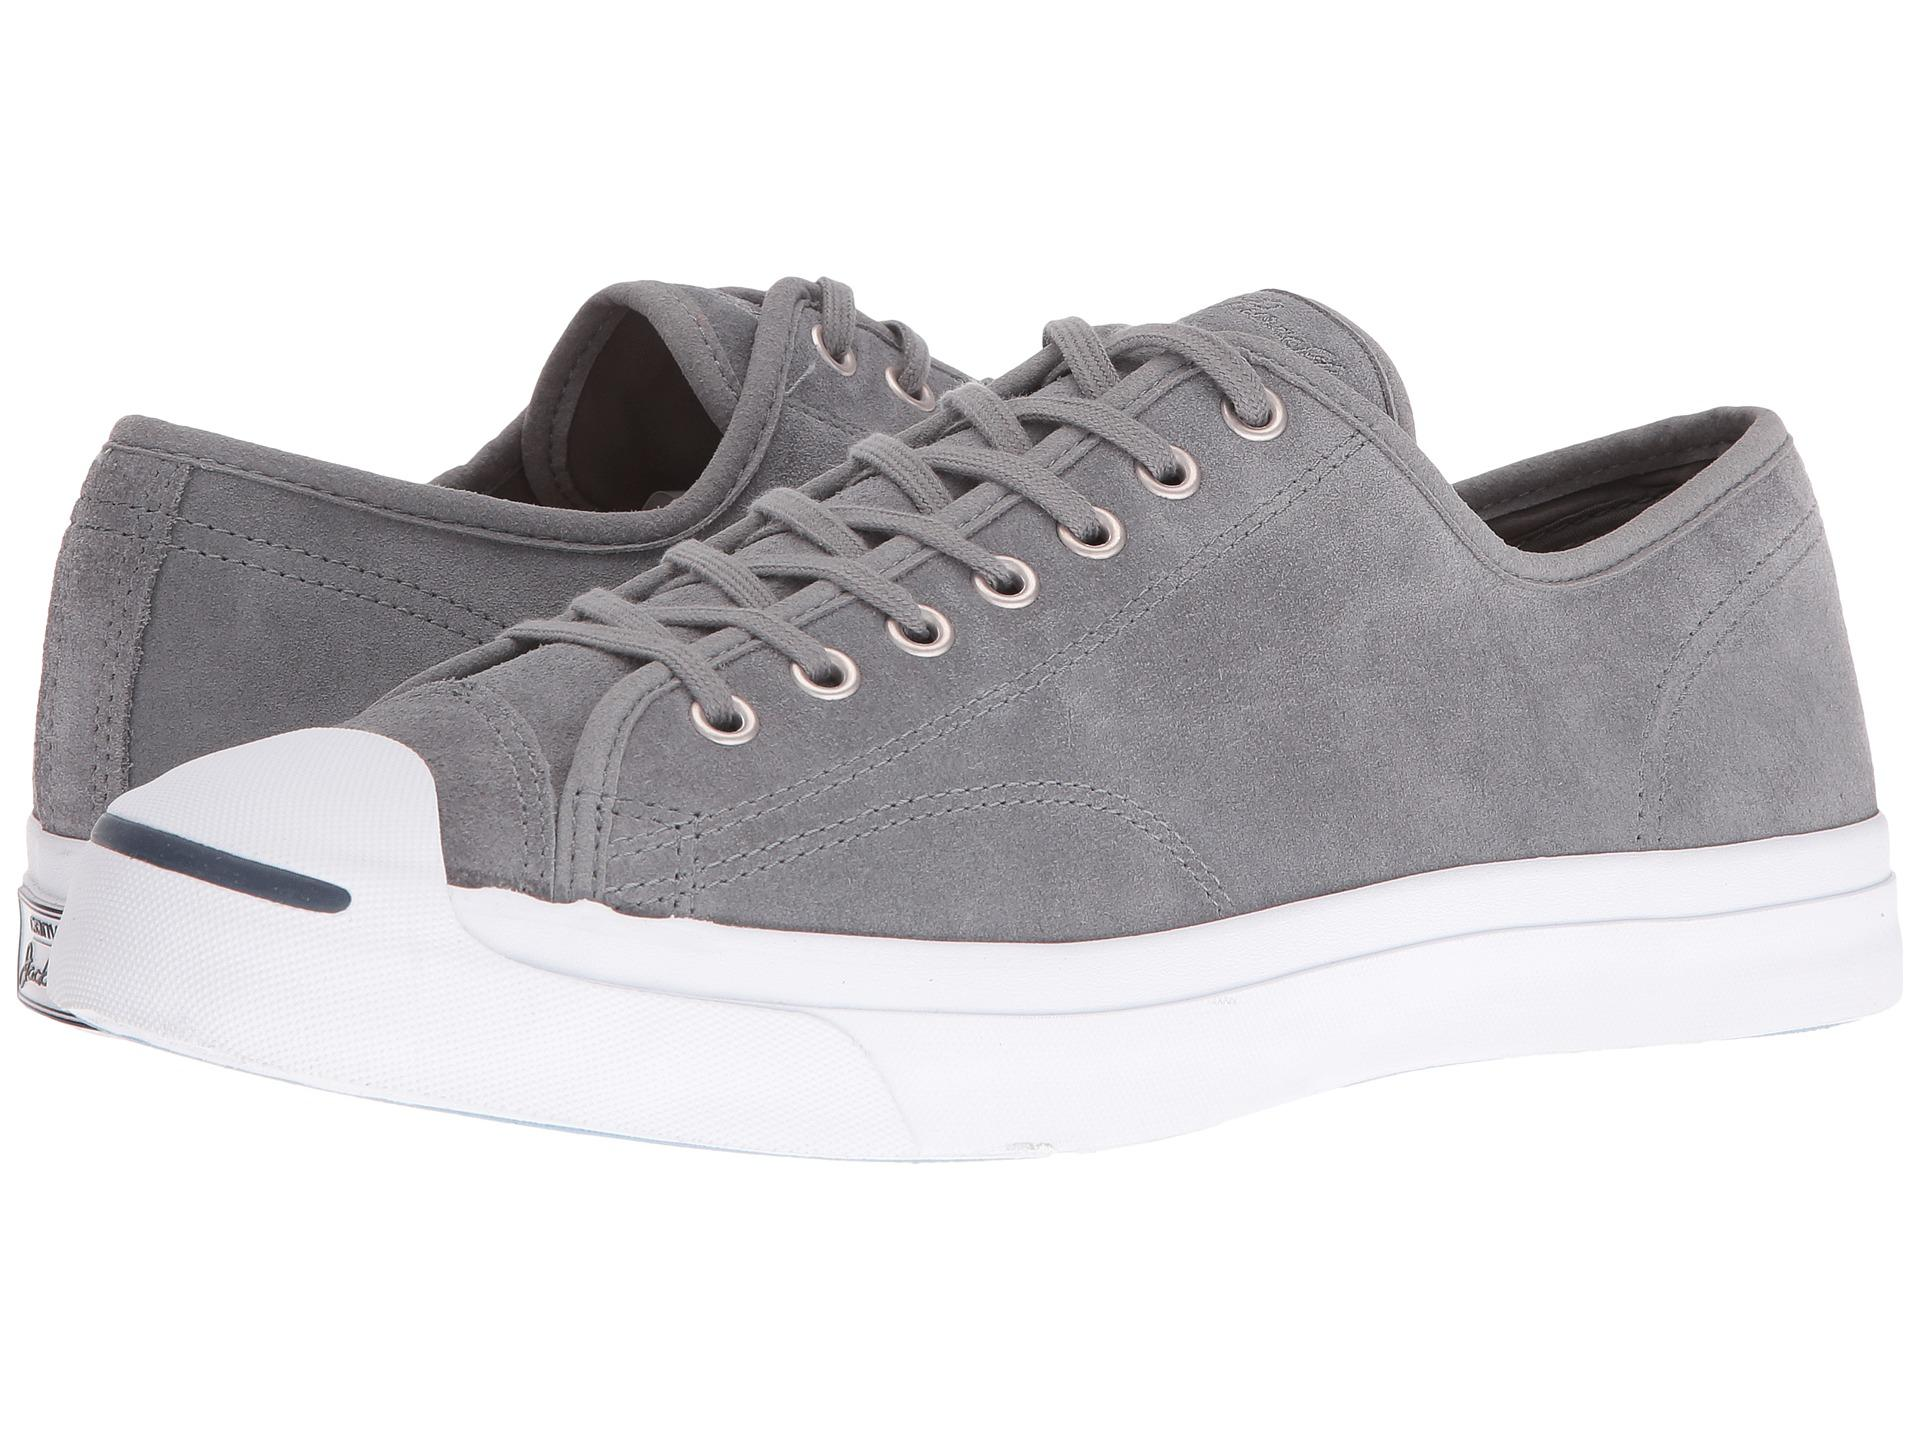 b554de61ed0f Lyst - Converse Jack Purcell® Ltt Ox - Washout Suede Pack for Men